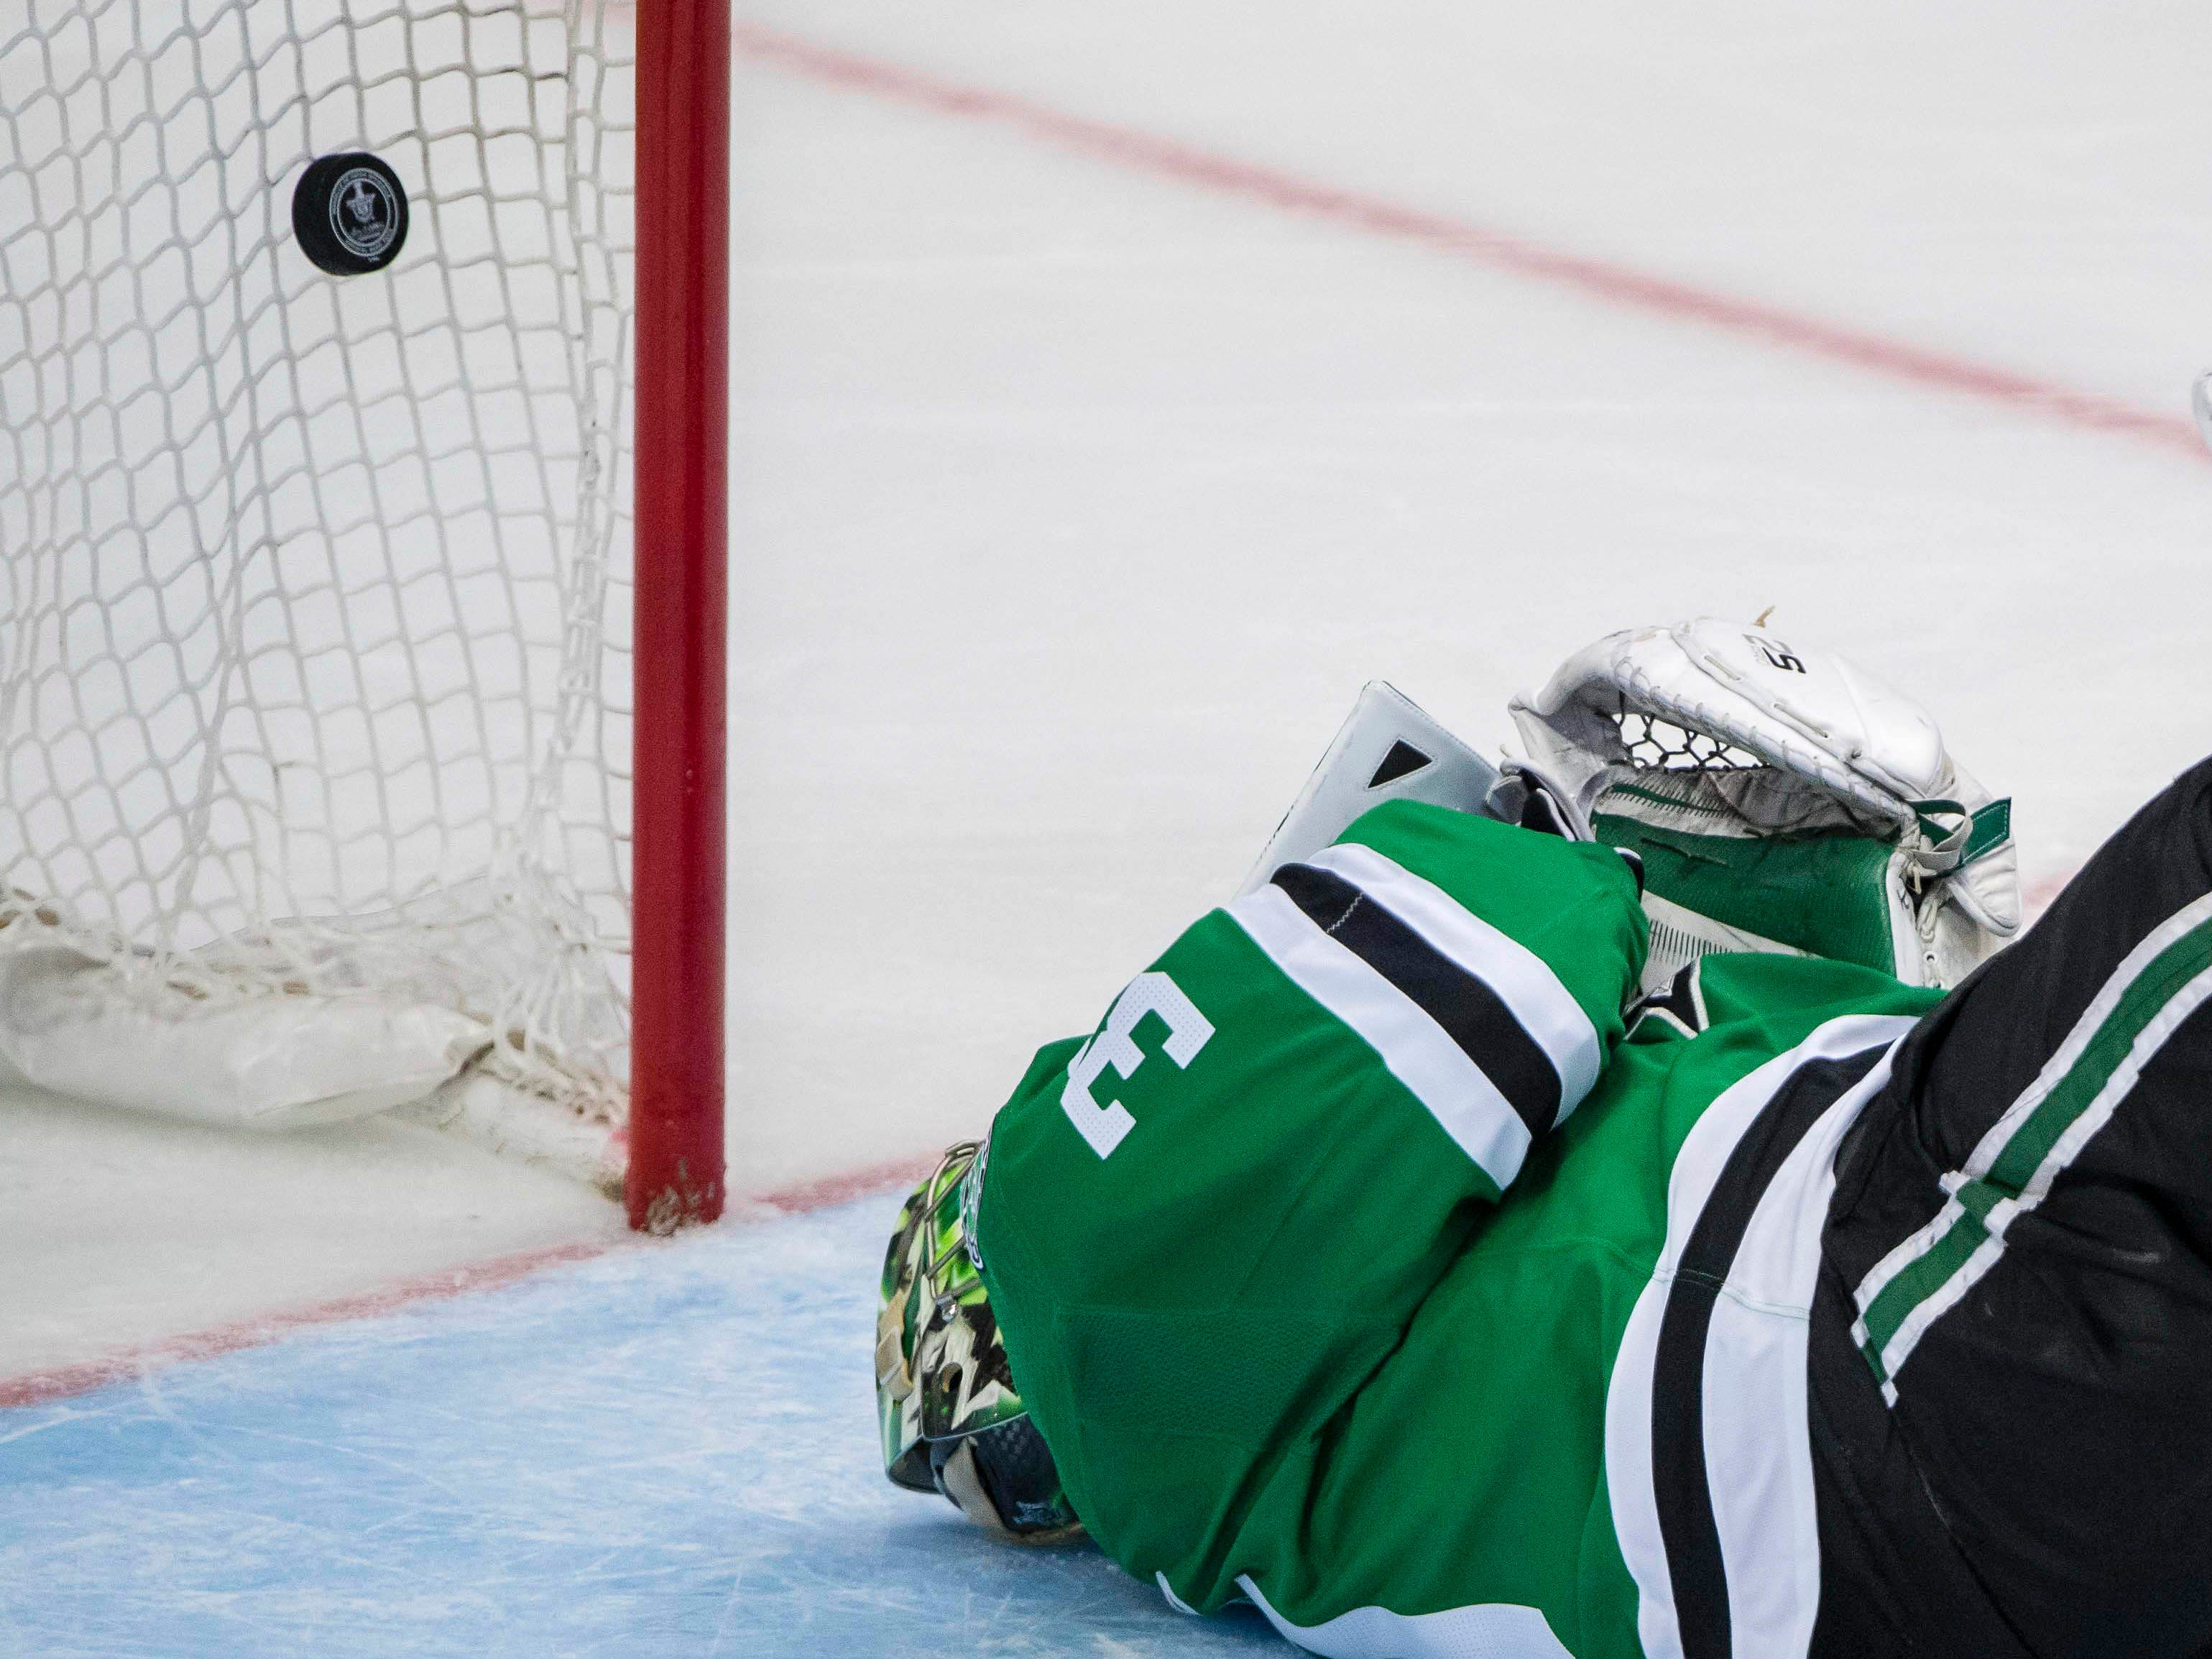 Second round: Stars goalie Ben Bishop lies on the ice after being injured. The Blues maintained possession of the puck and Jaden Schwartz scored on a deflection while Bishop was down.